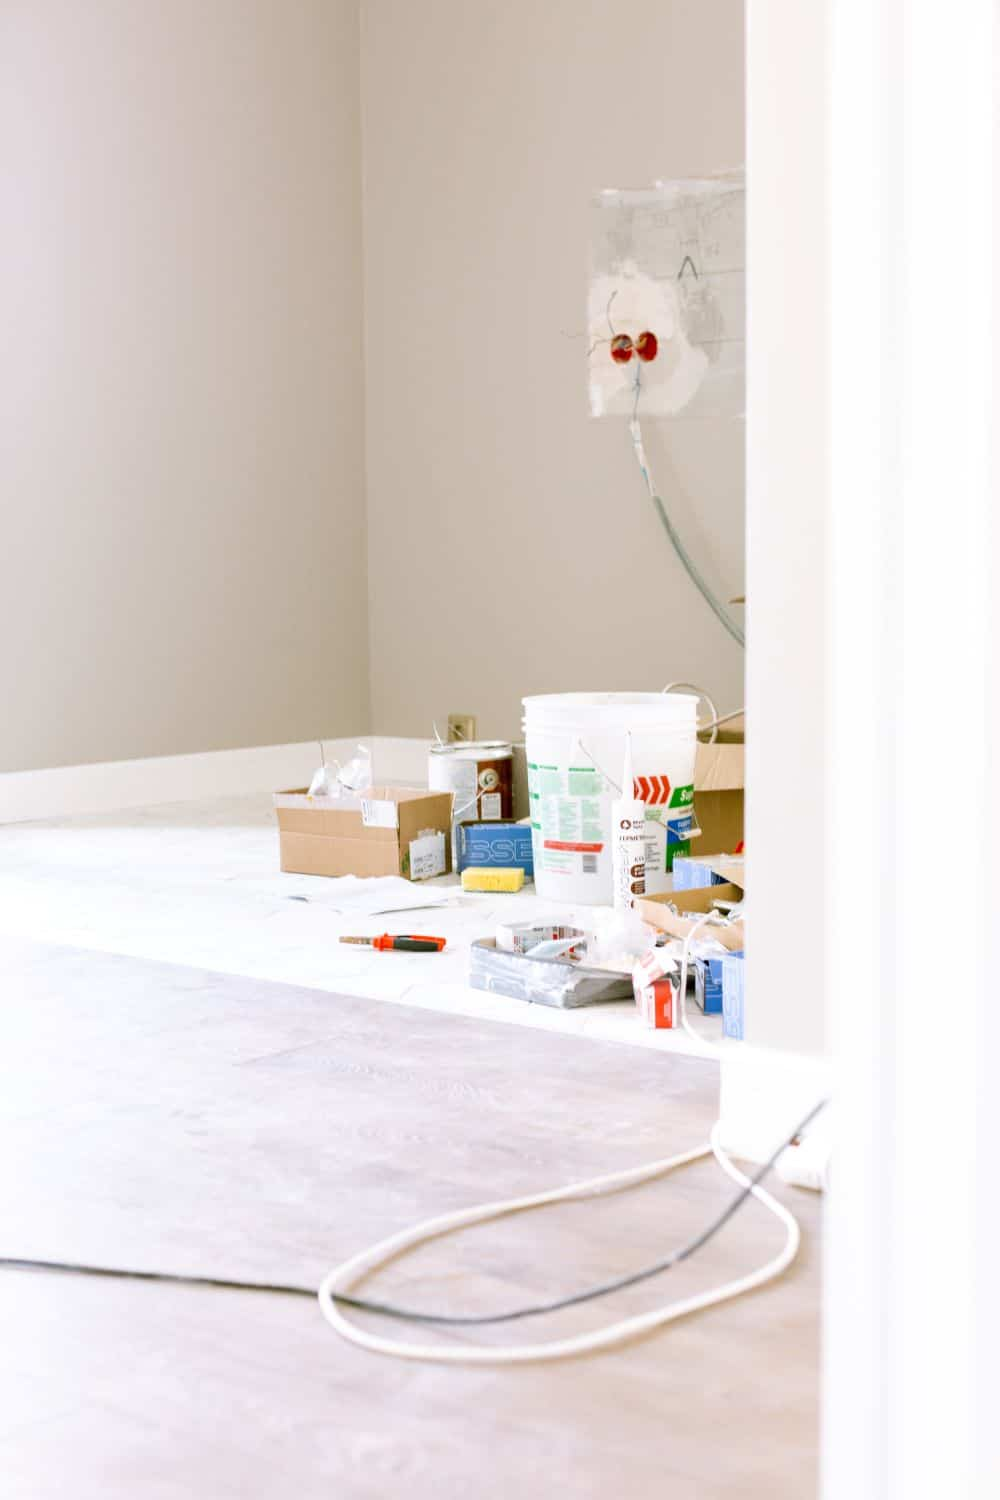 A picture of an empty room with all resources required to paint it on a sheet in the middle